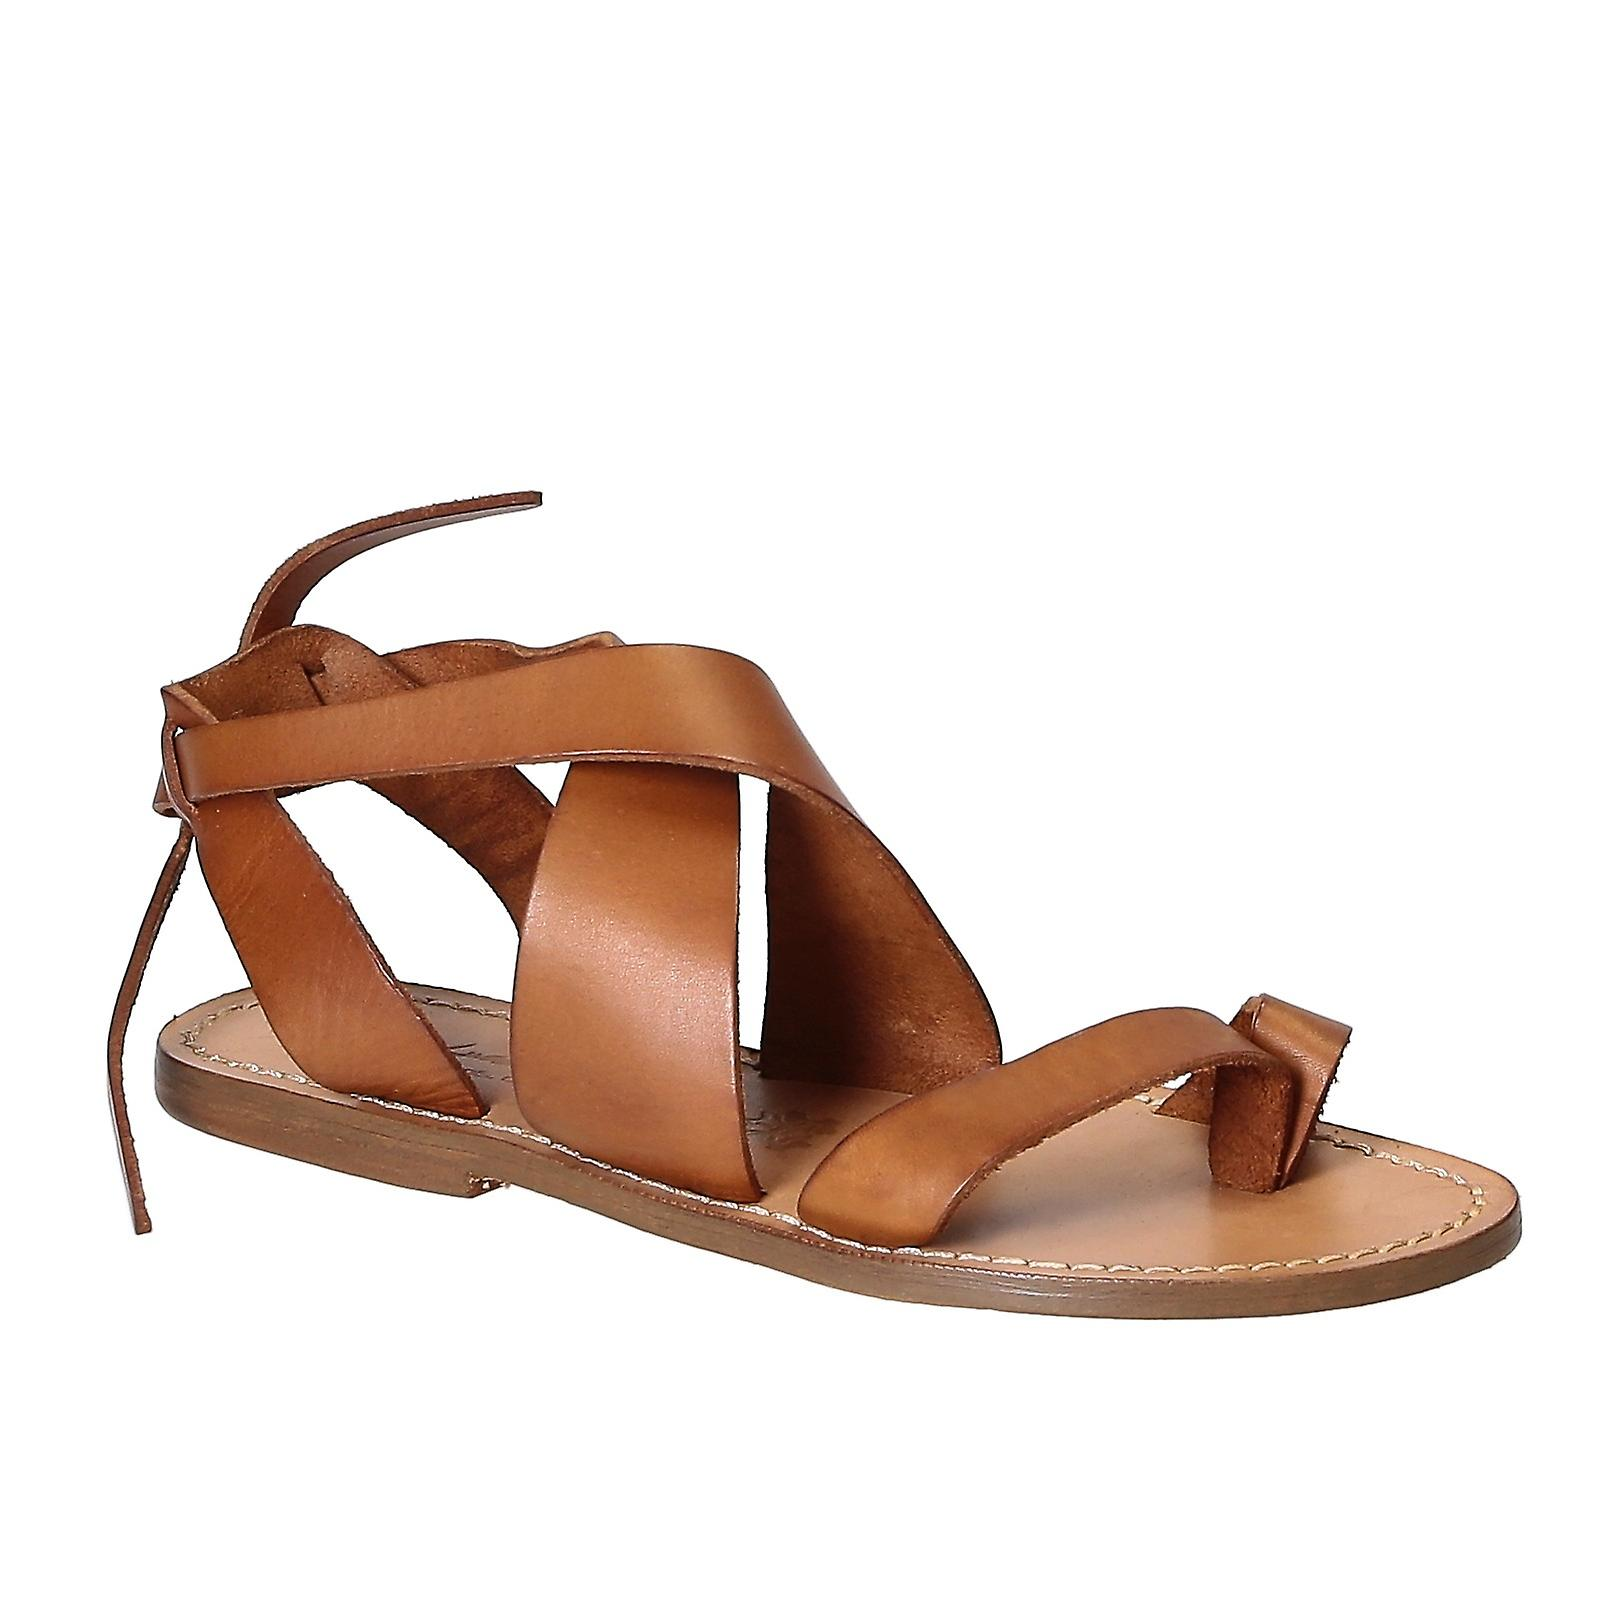 Women sandals in tan Leather handmade in Italy h2xzk